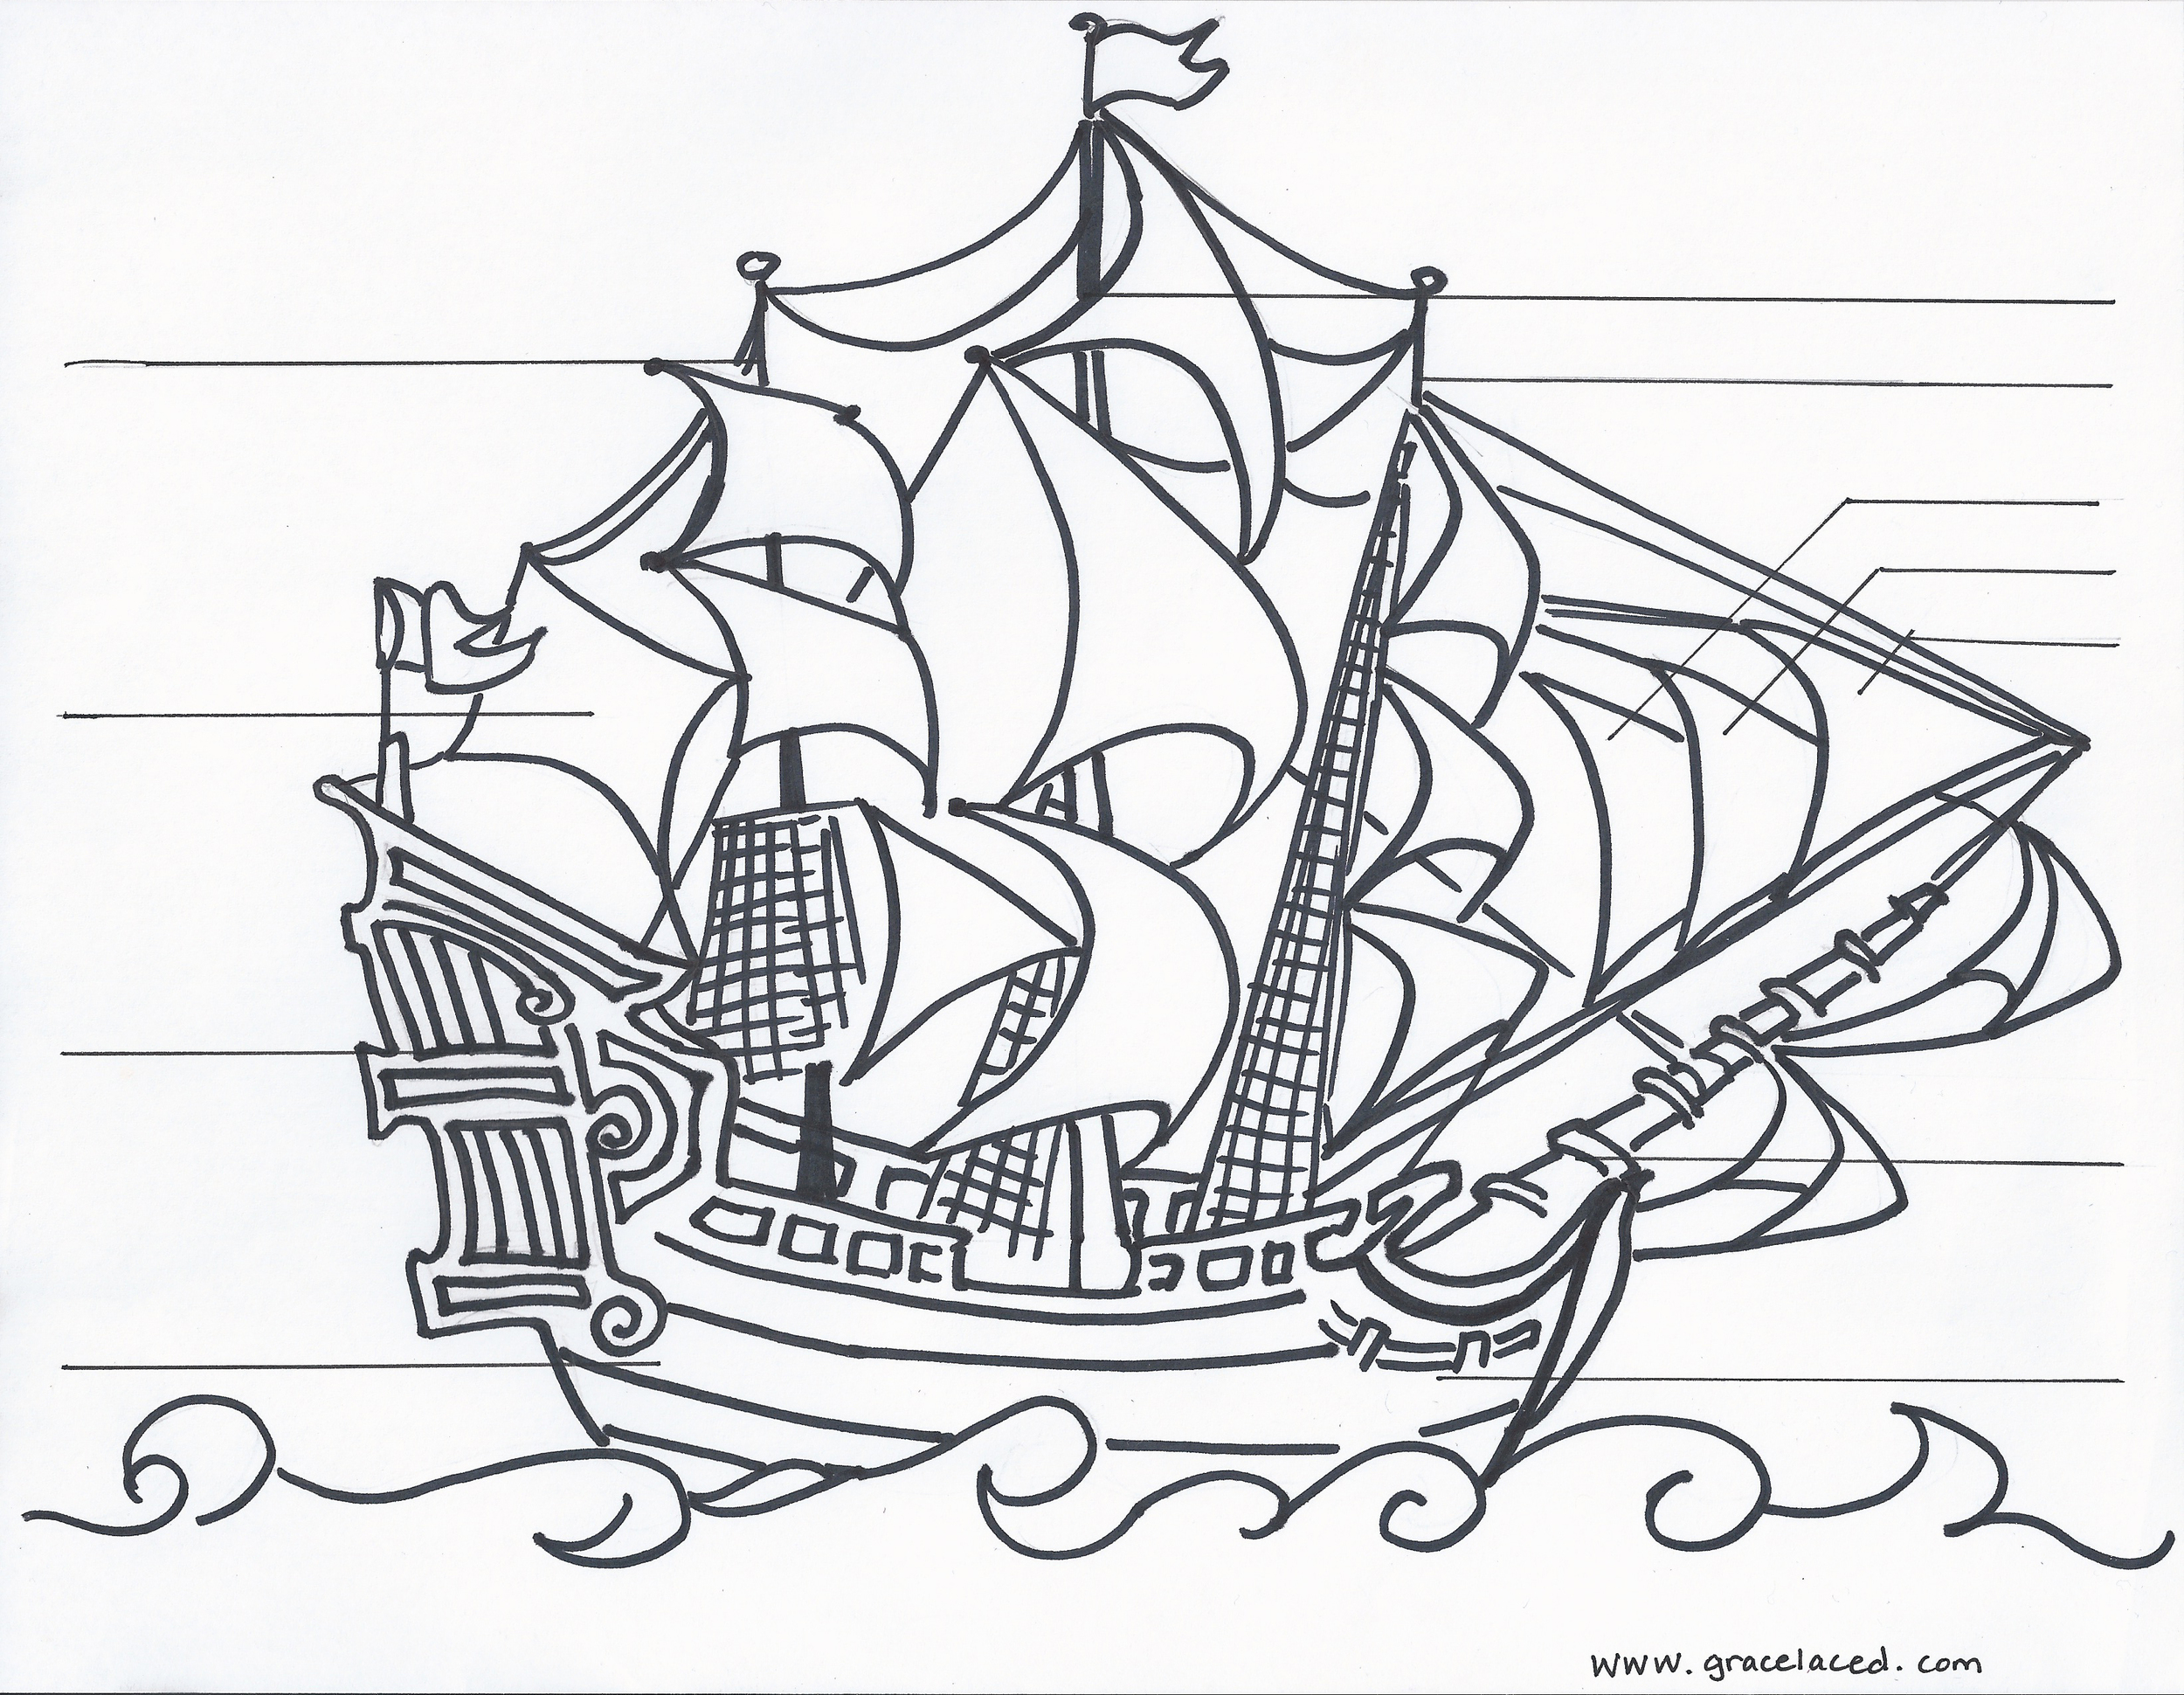 parts of a pirate ship diagram sangamo electric meter wiring the anatomy coloring sheet free